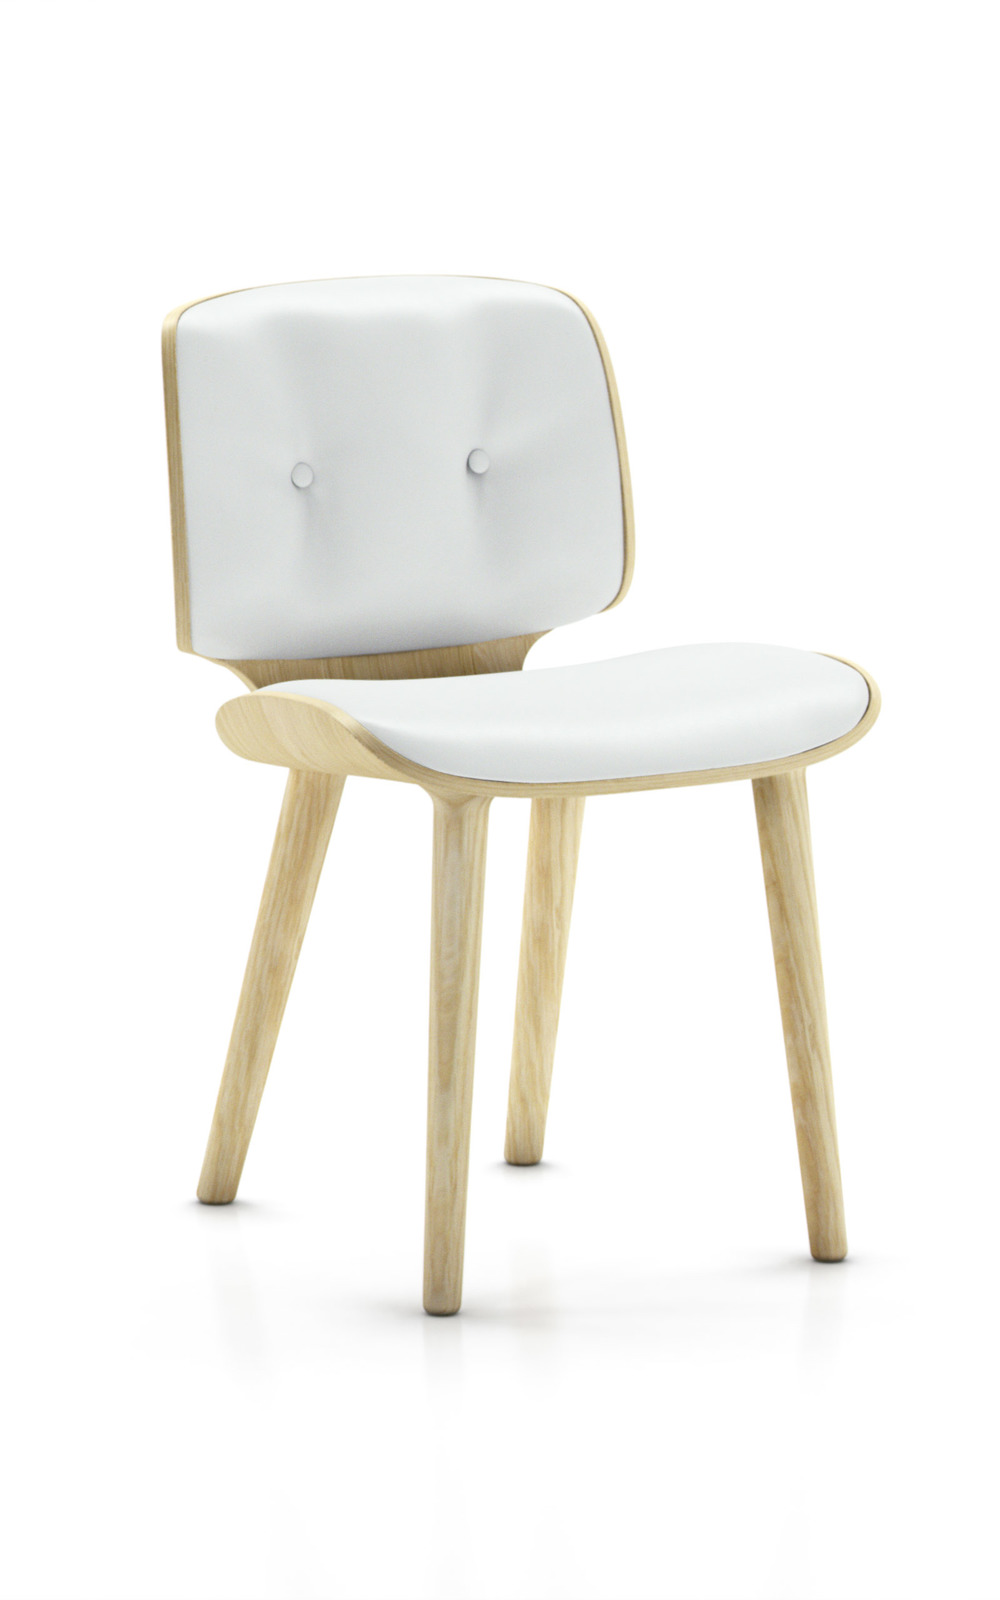 nut_dining_chair_white_leather_by_marcel_wanders_for_moooi.jpg